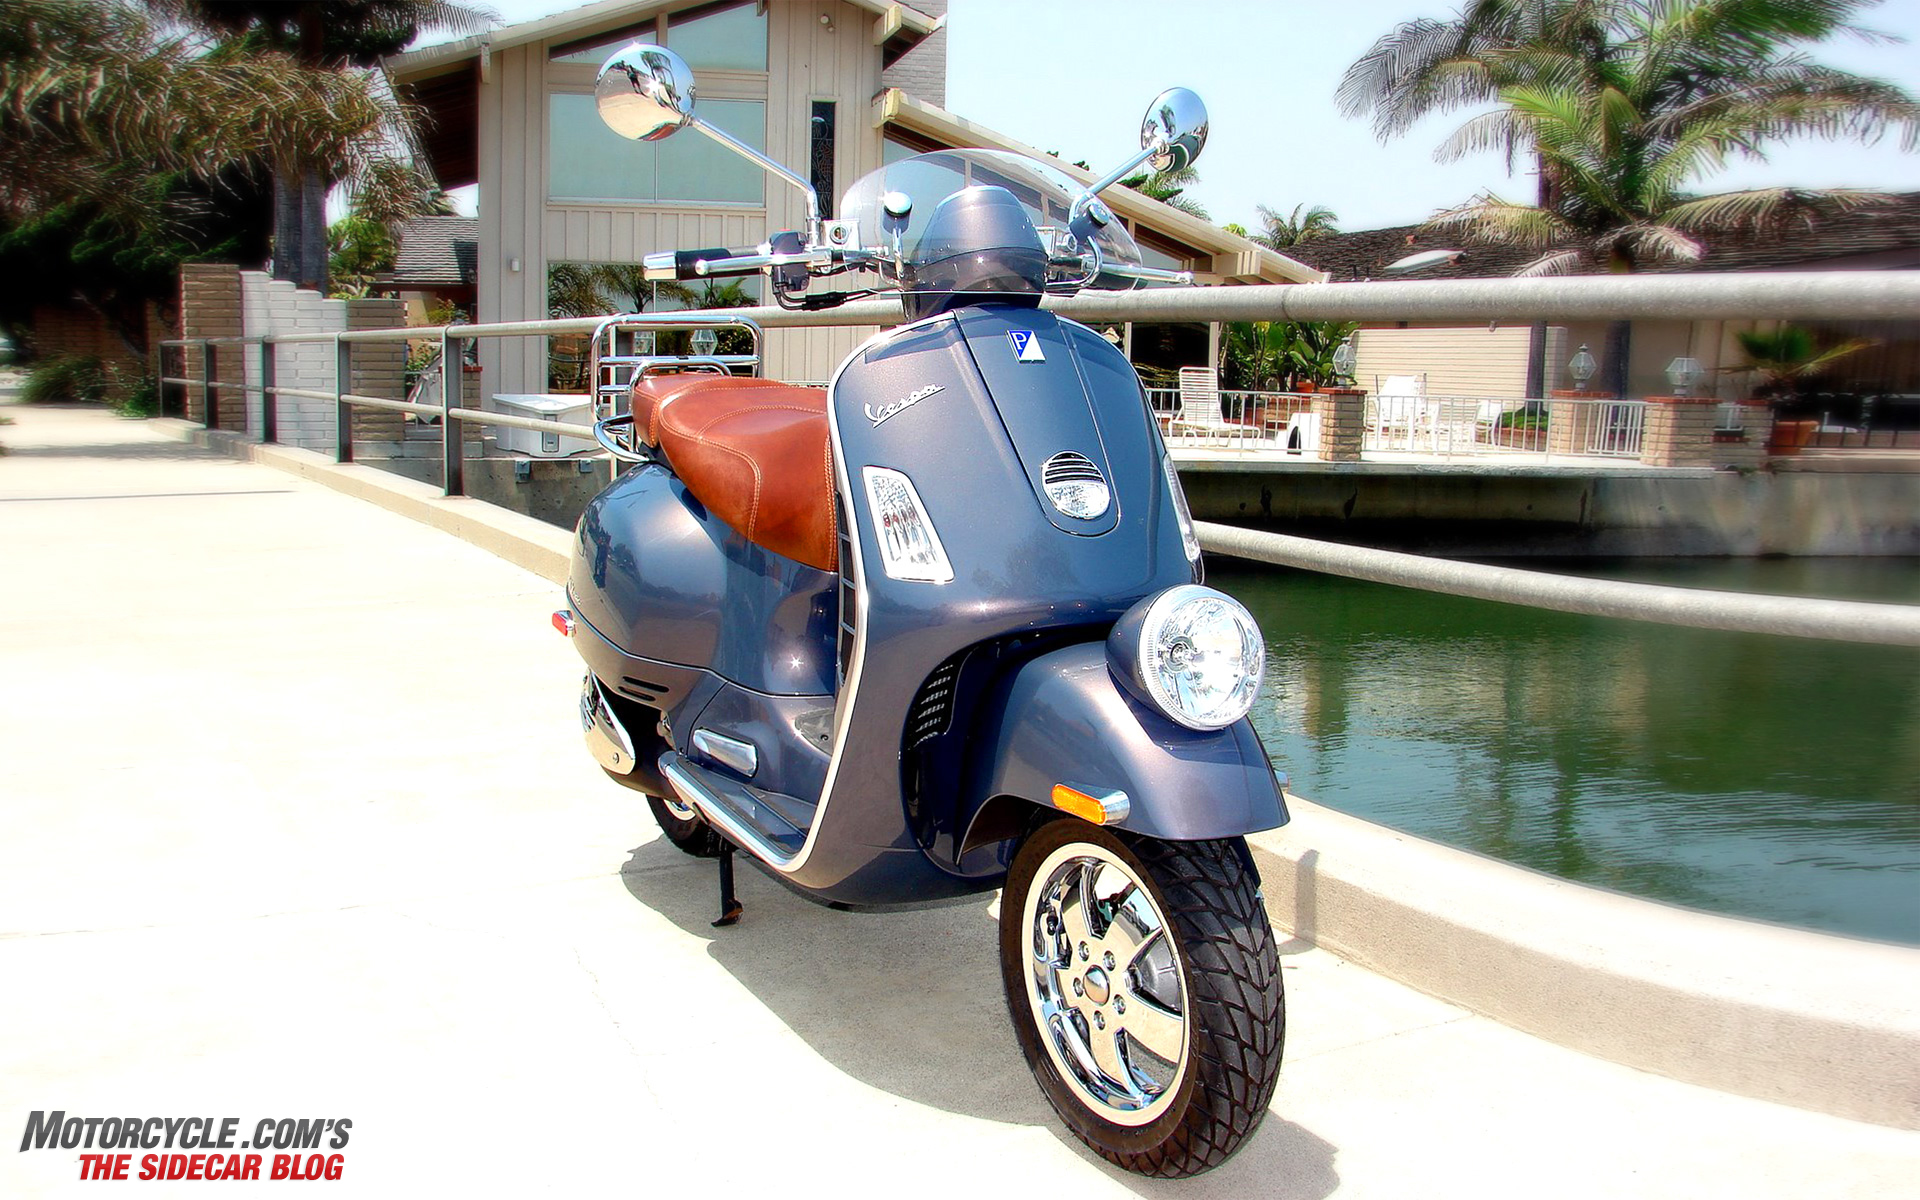 Vespa Scooter | eBay - Electronics, Cars, Fashion, Collectibles